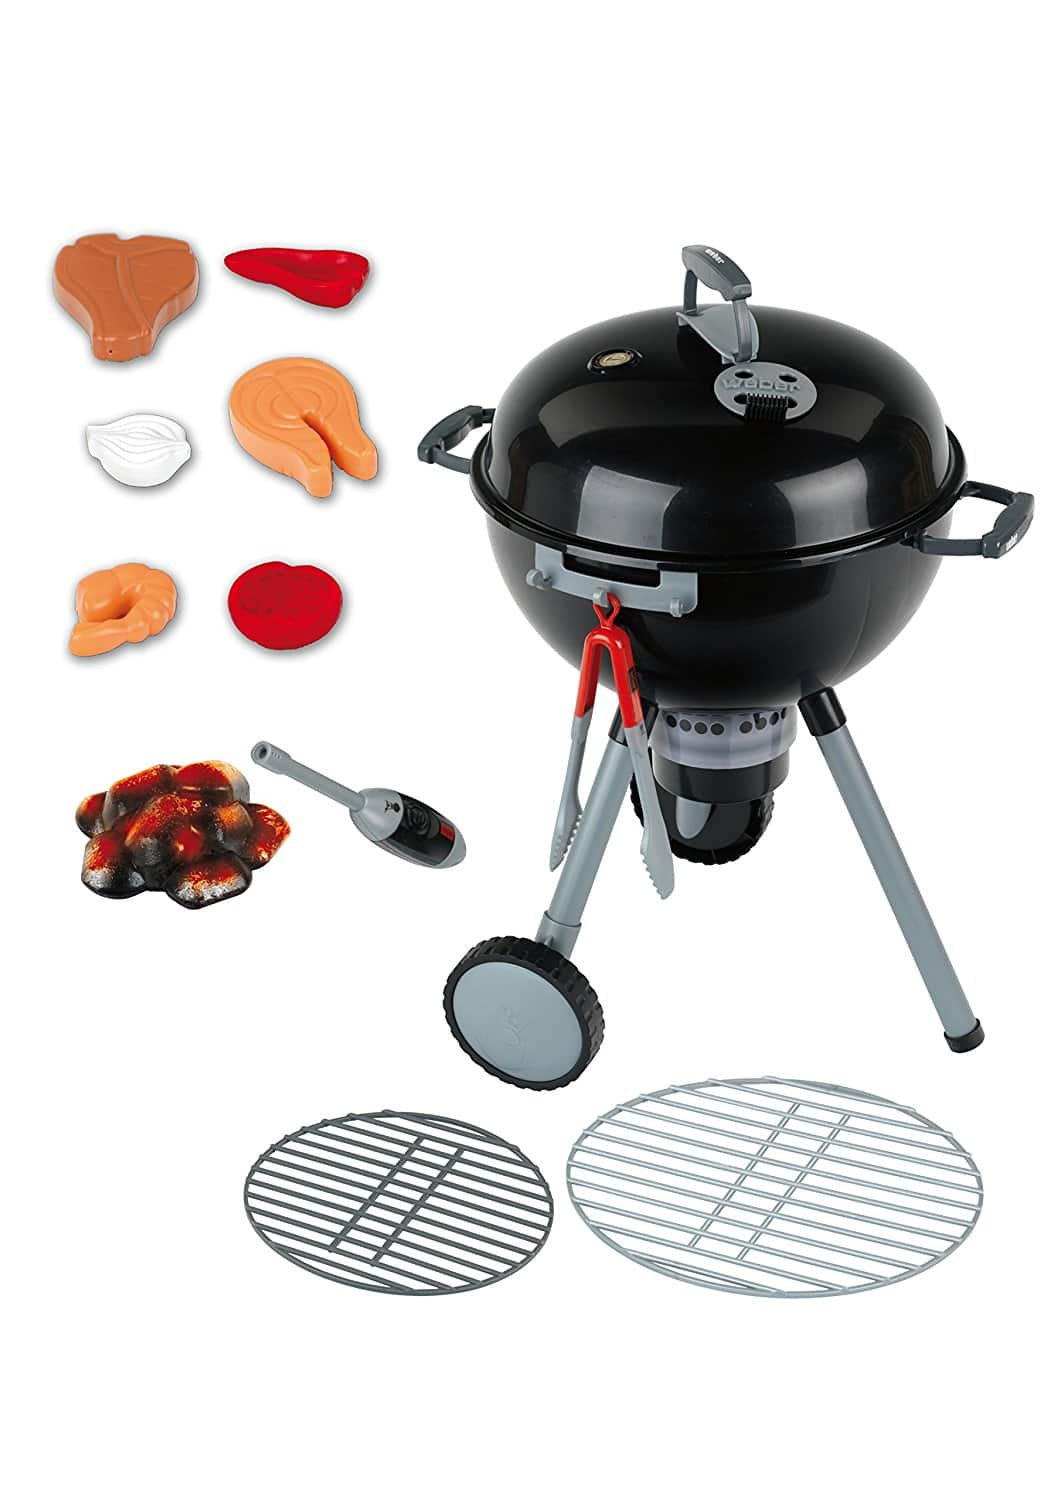 Weber Kettle Grill Toy Regular by Theo Klein - $27.99 @ Amazon